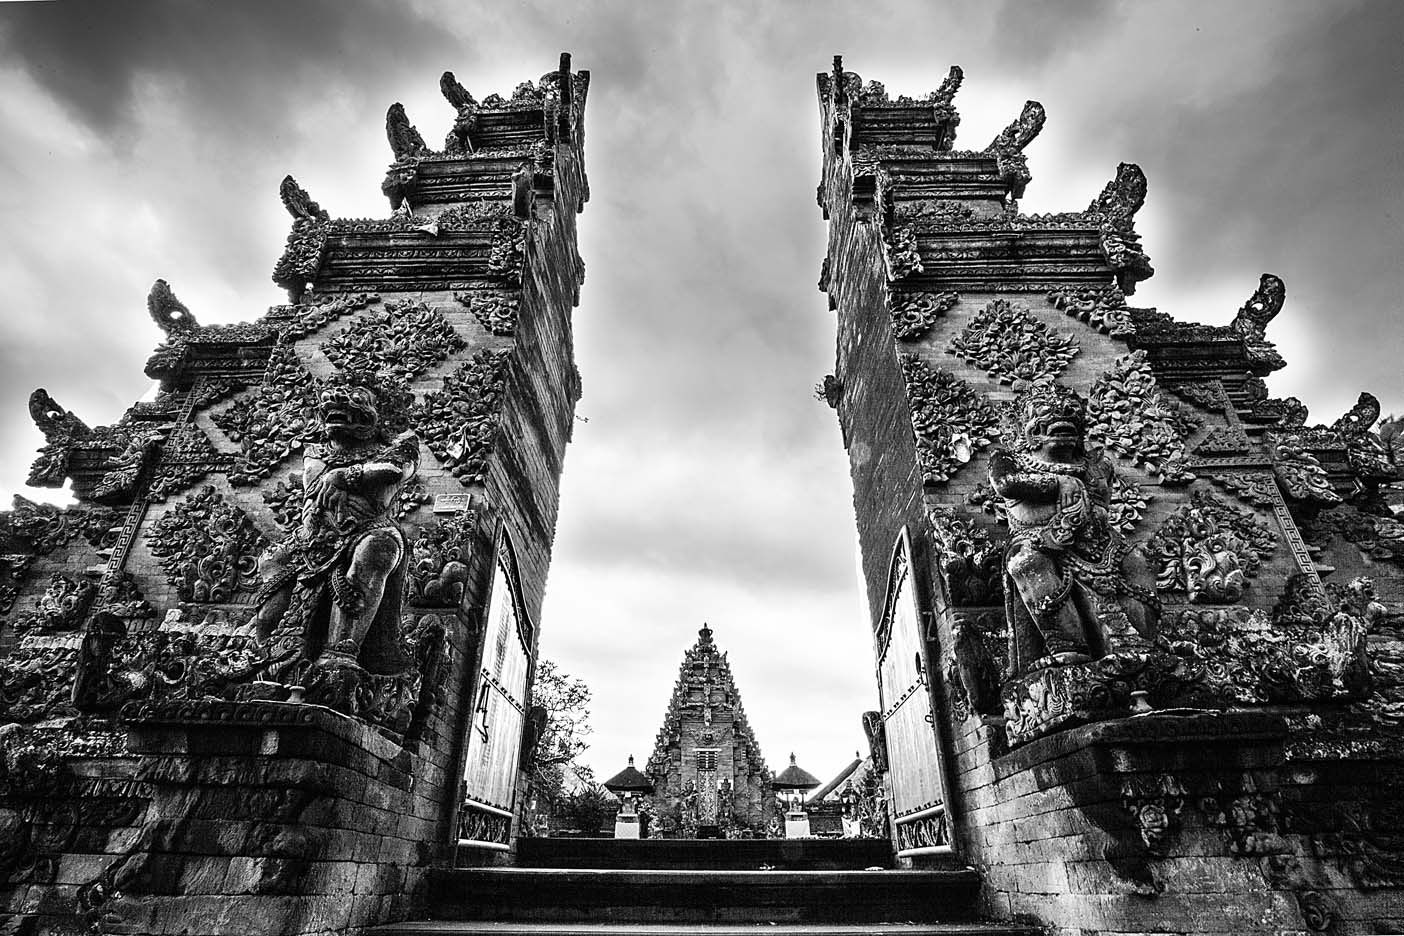 Photograph The Lost Temple by Stephen Liono on 500px